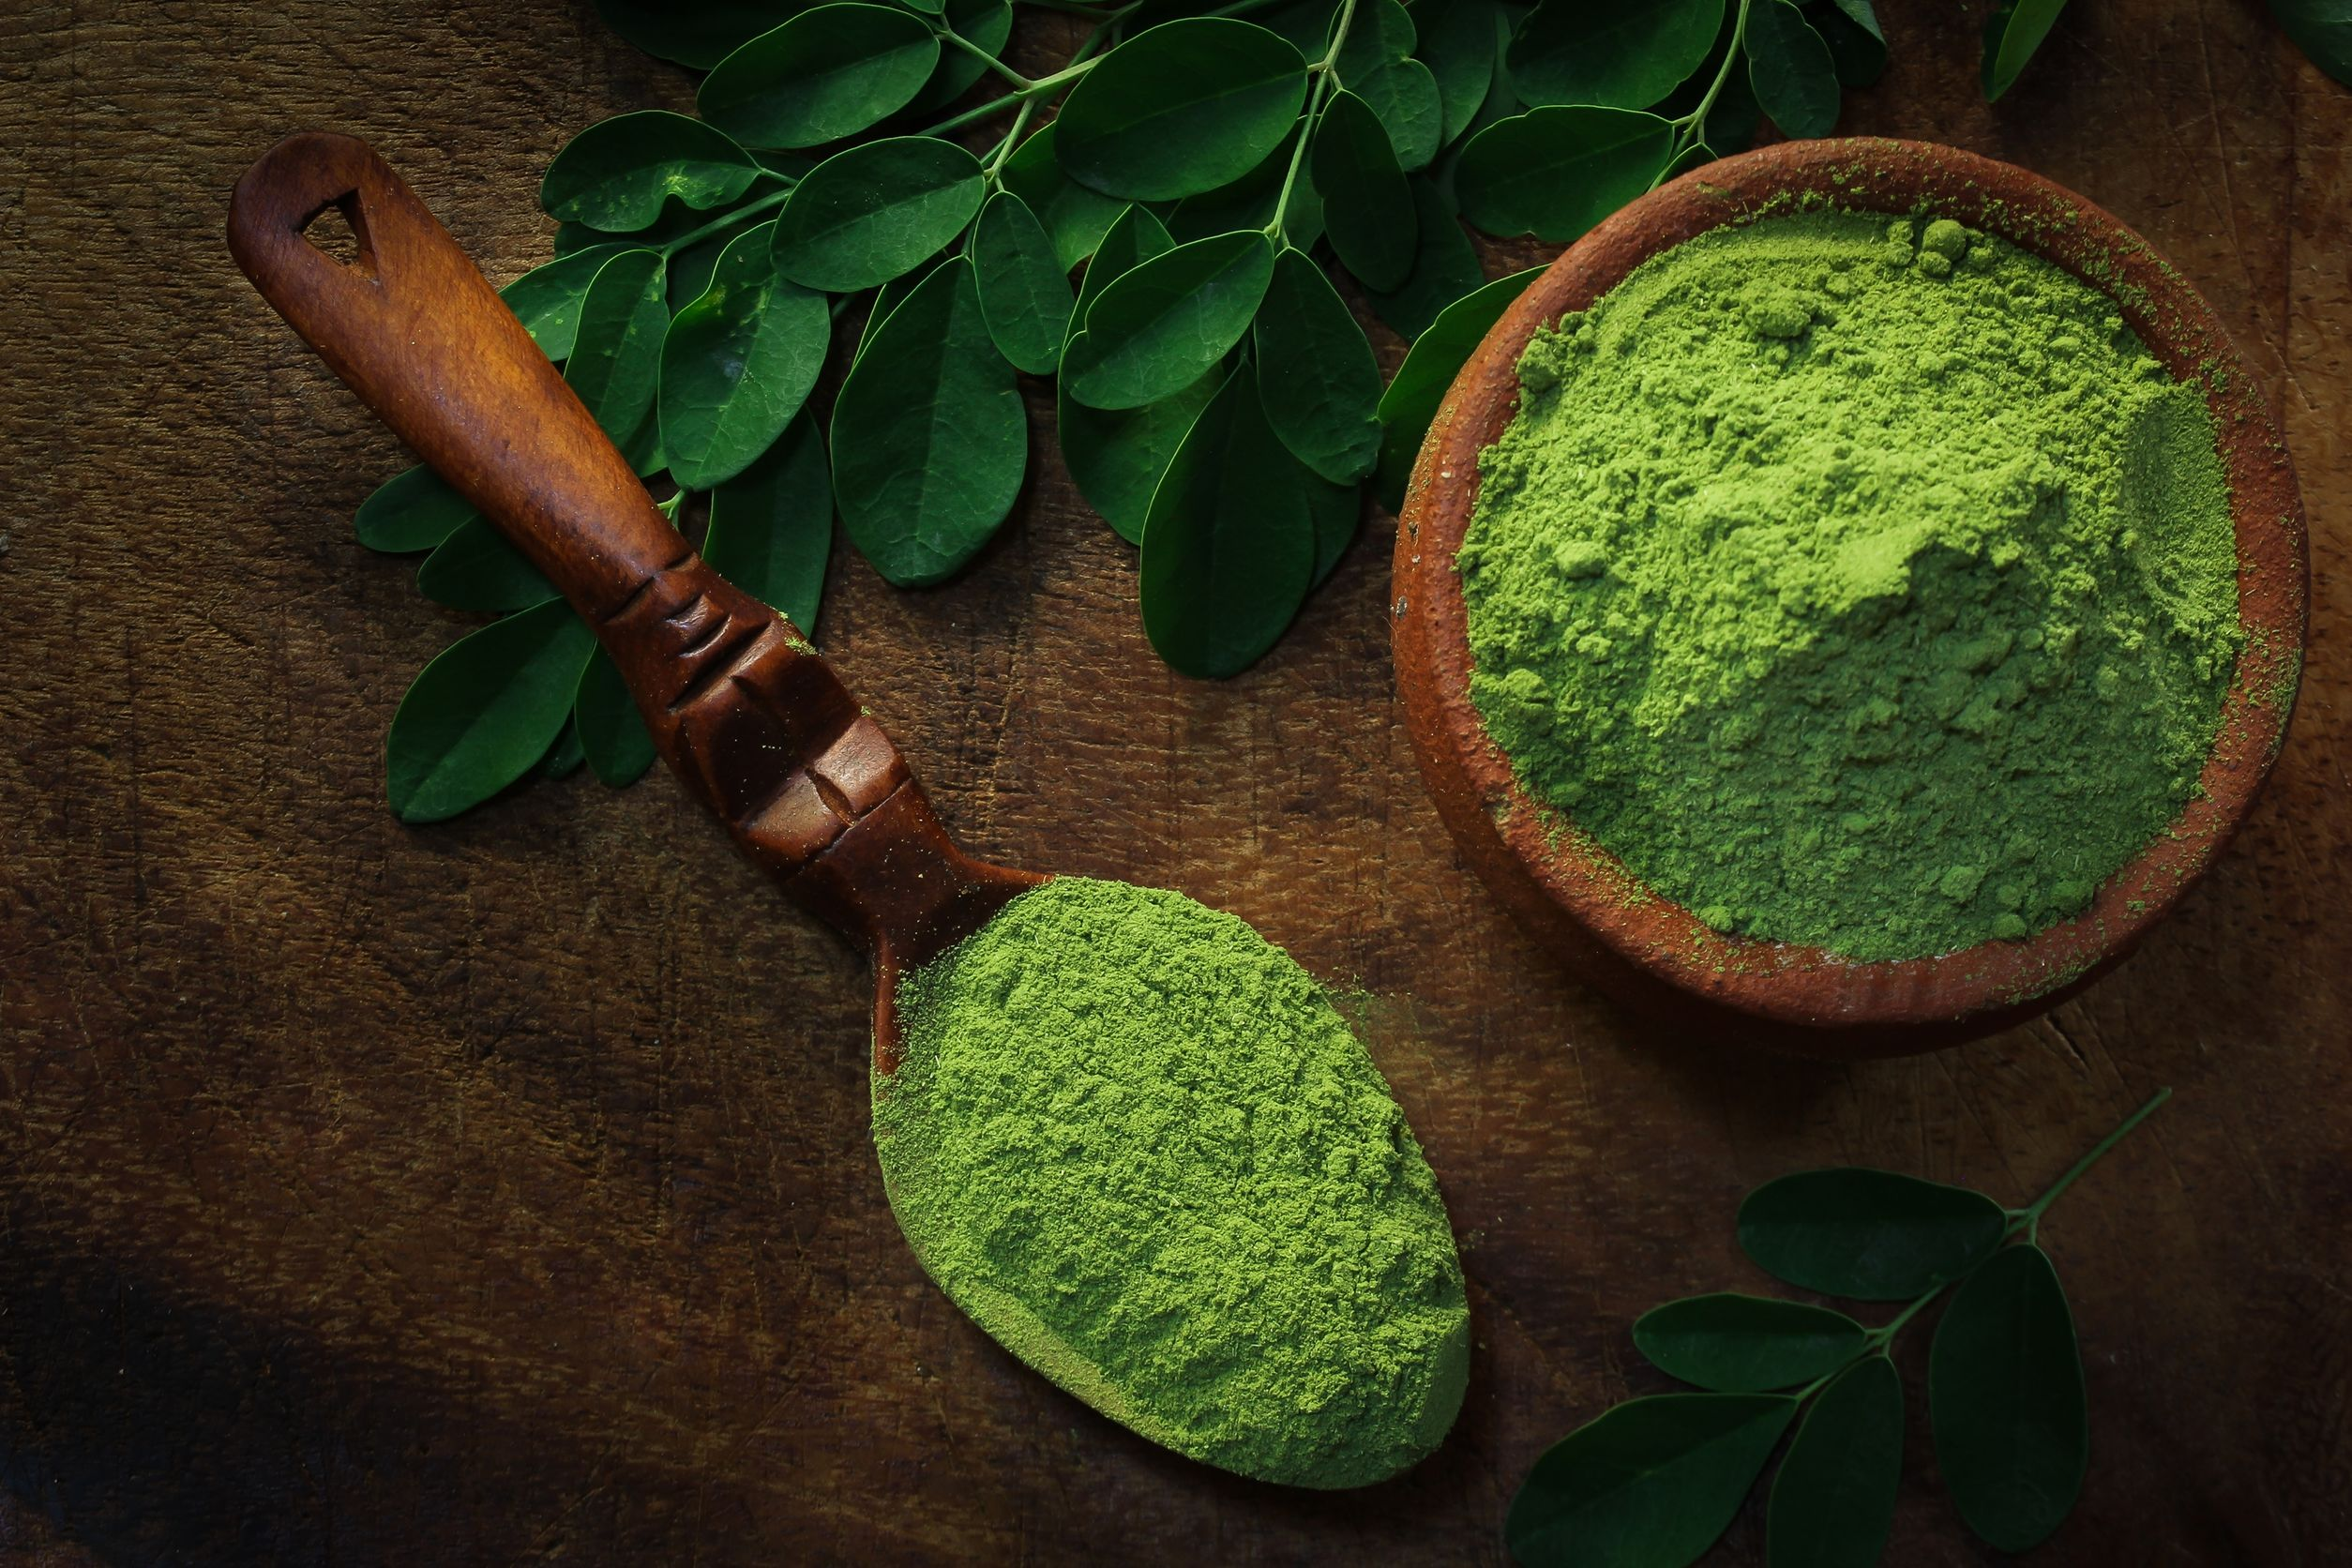 Best Moringa Product 2021: Shopping Guide & Review